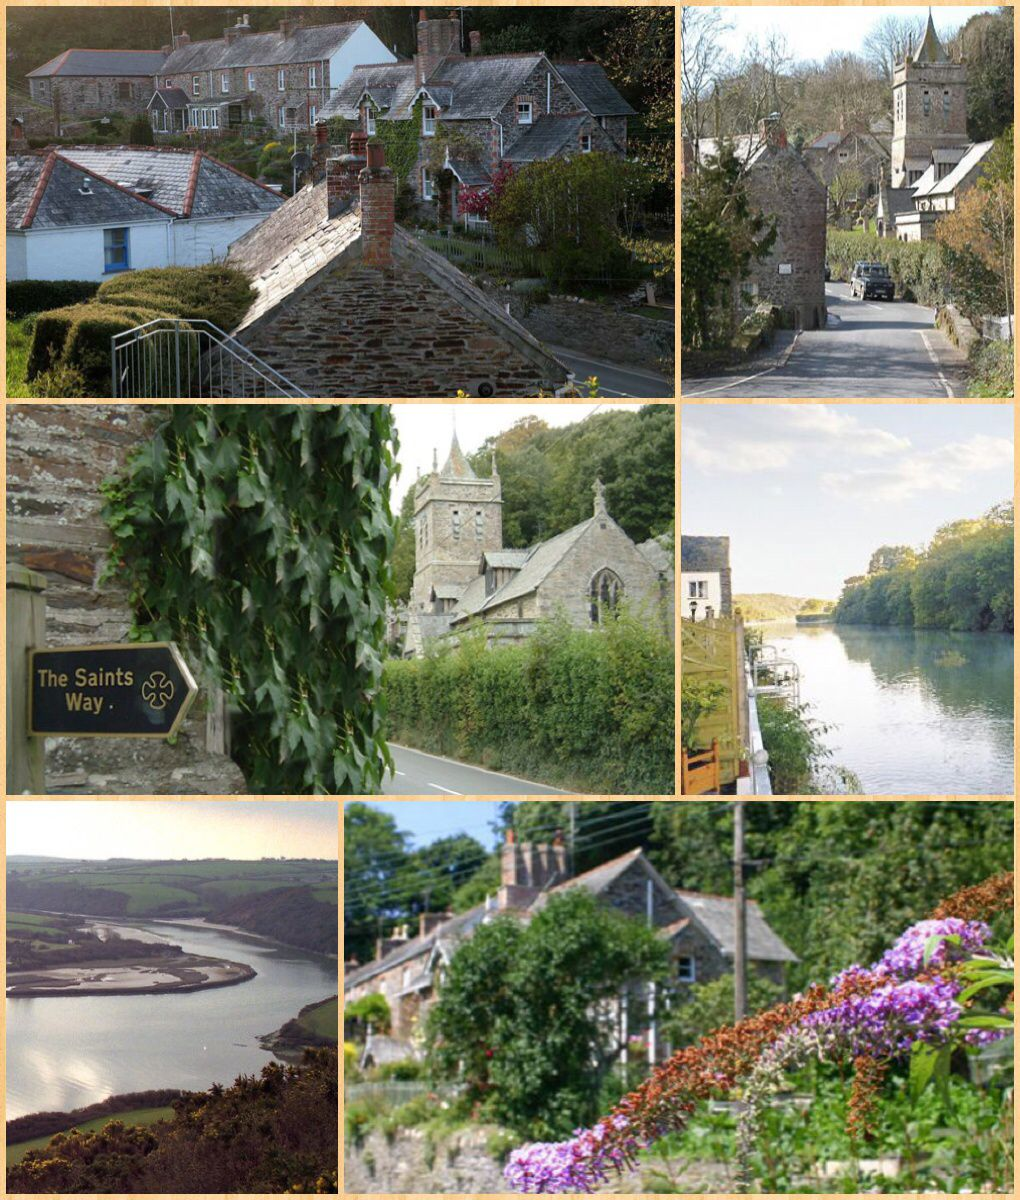 Little Petherick Cornish Nansfenten Is A Village And Civil Parish In North Cornwall